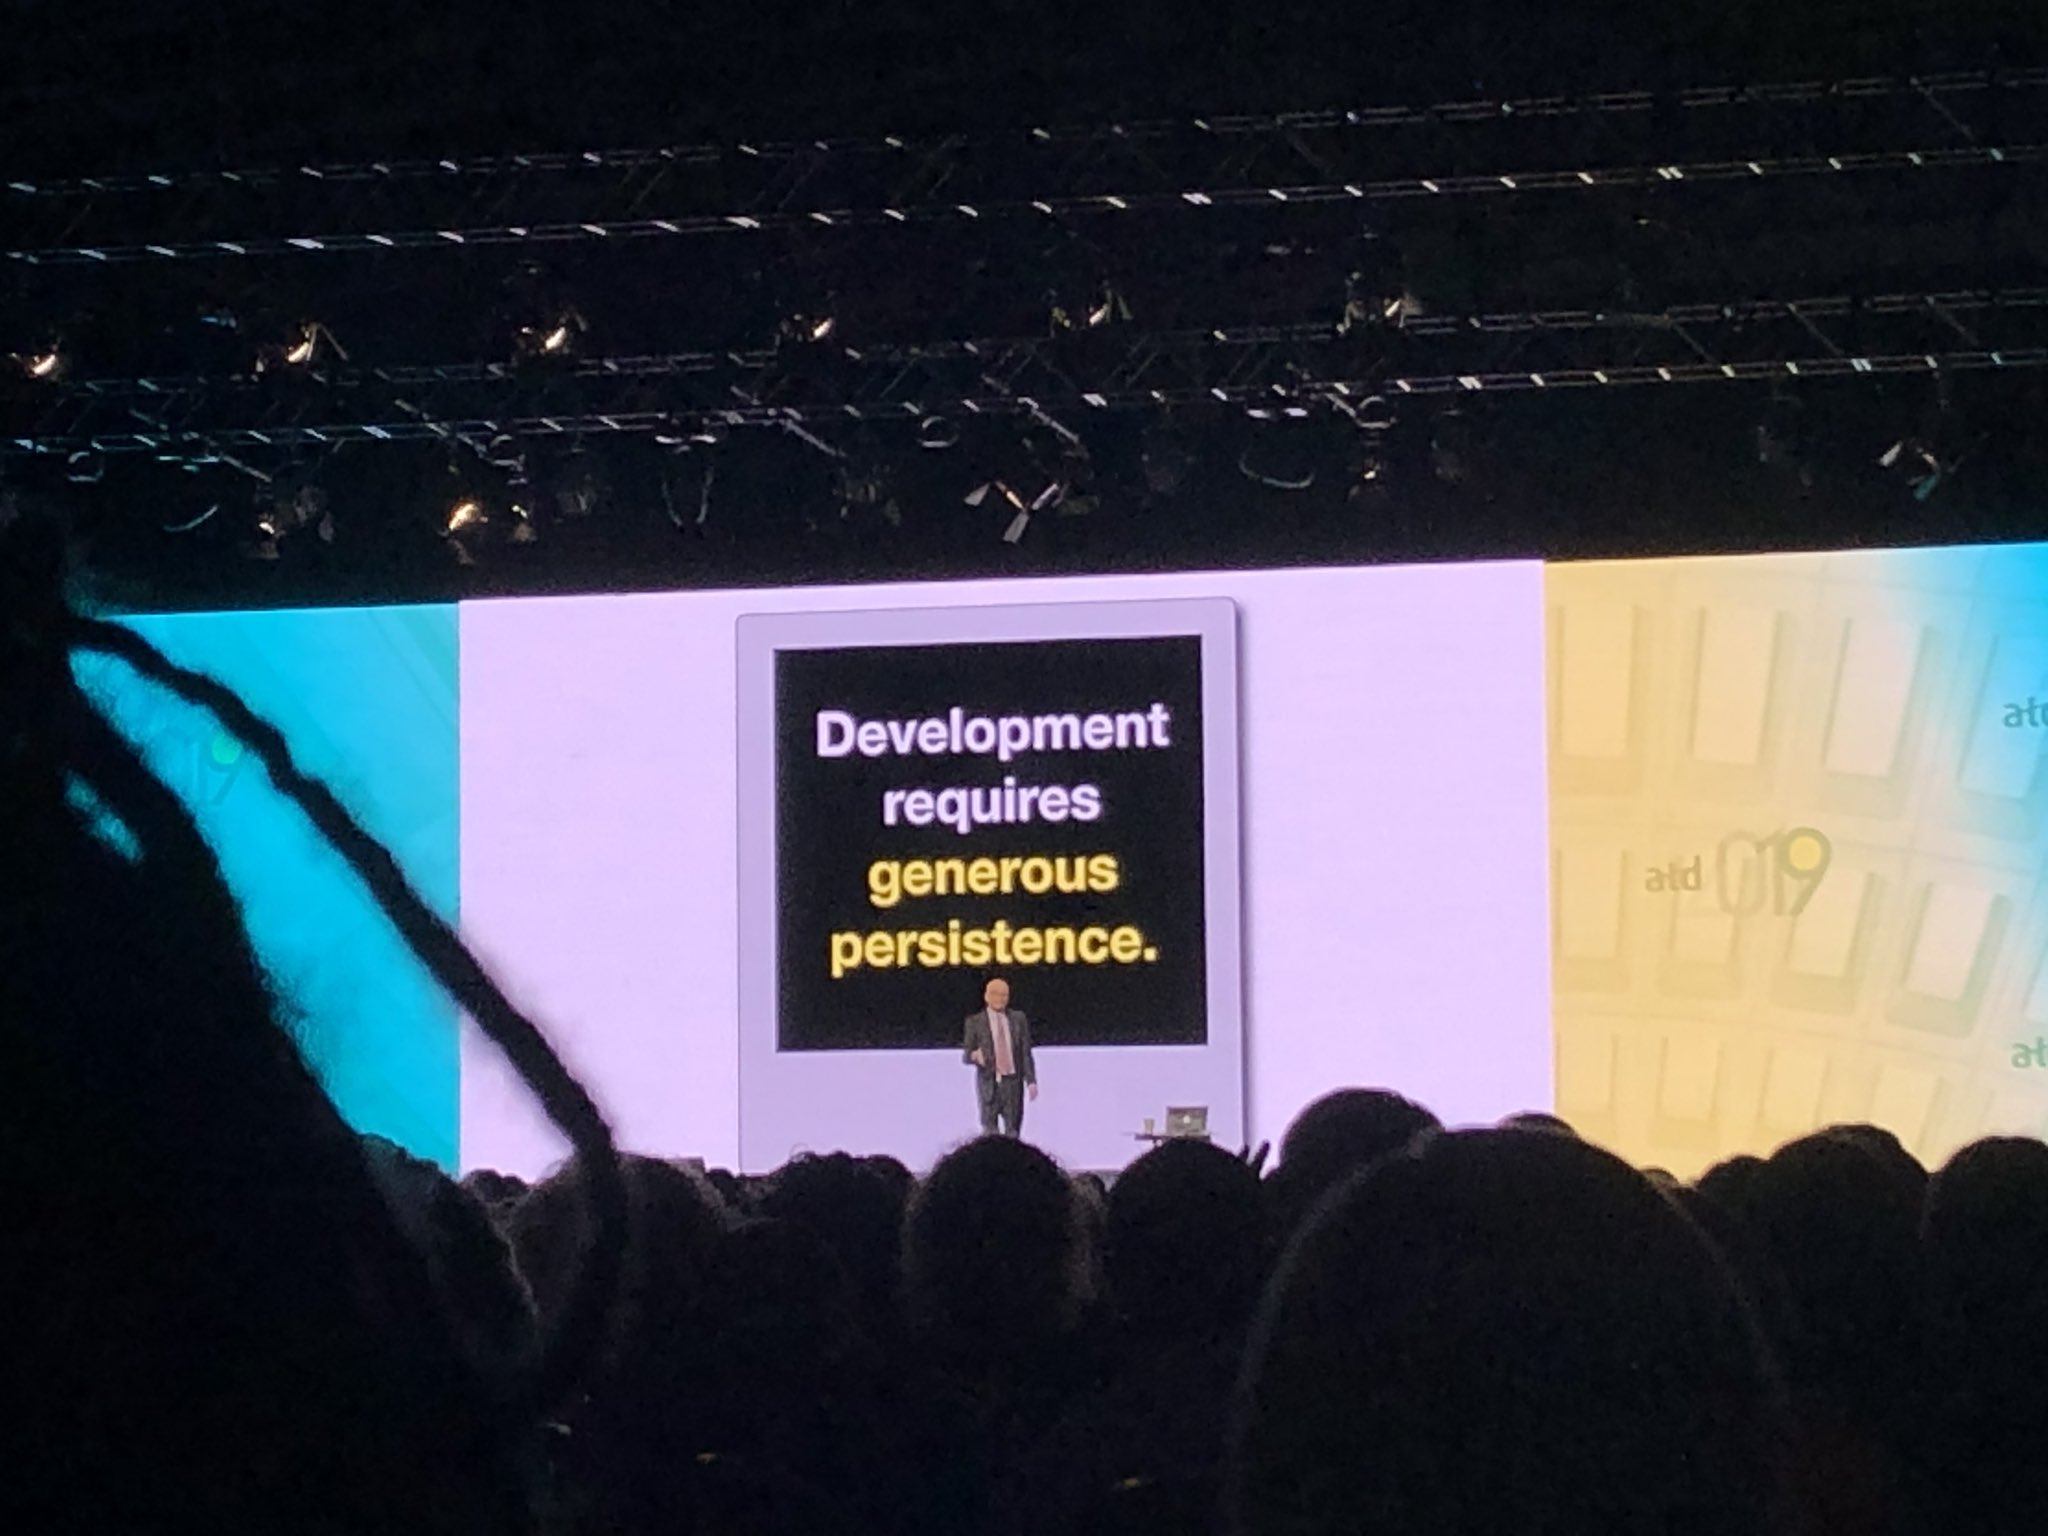 Already... @ThisIsSethsBlog challenging us to consider the unconventional. You're missing out if you're not here. @atd #atd2019 https://t.co/9UMbb96TWq